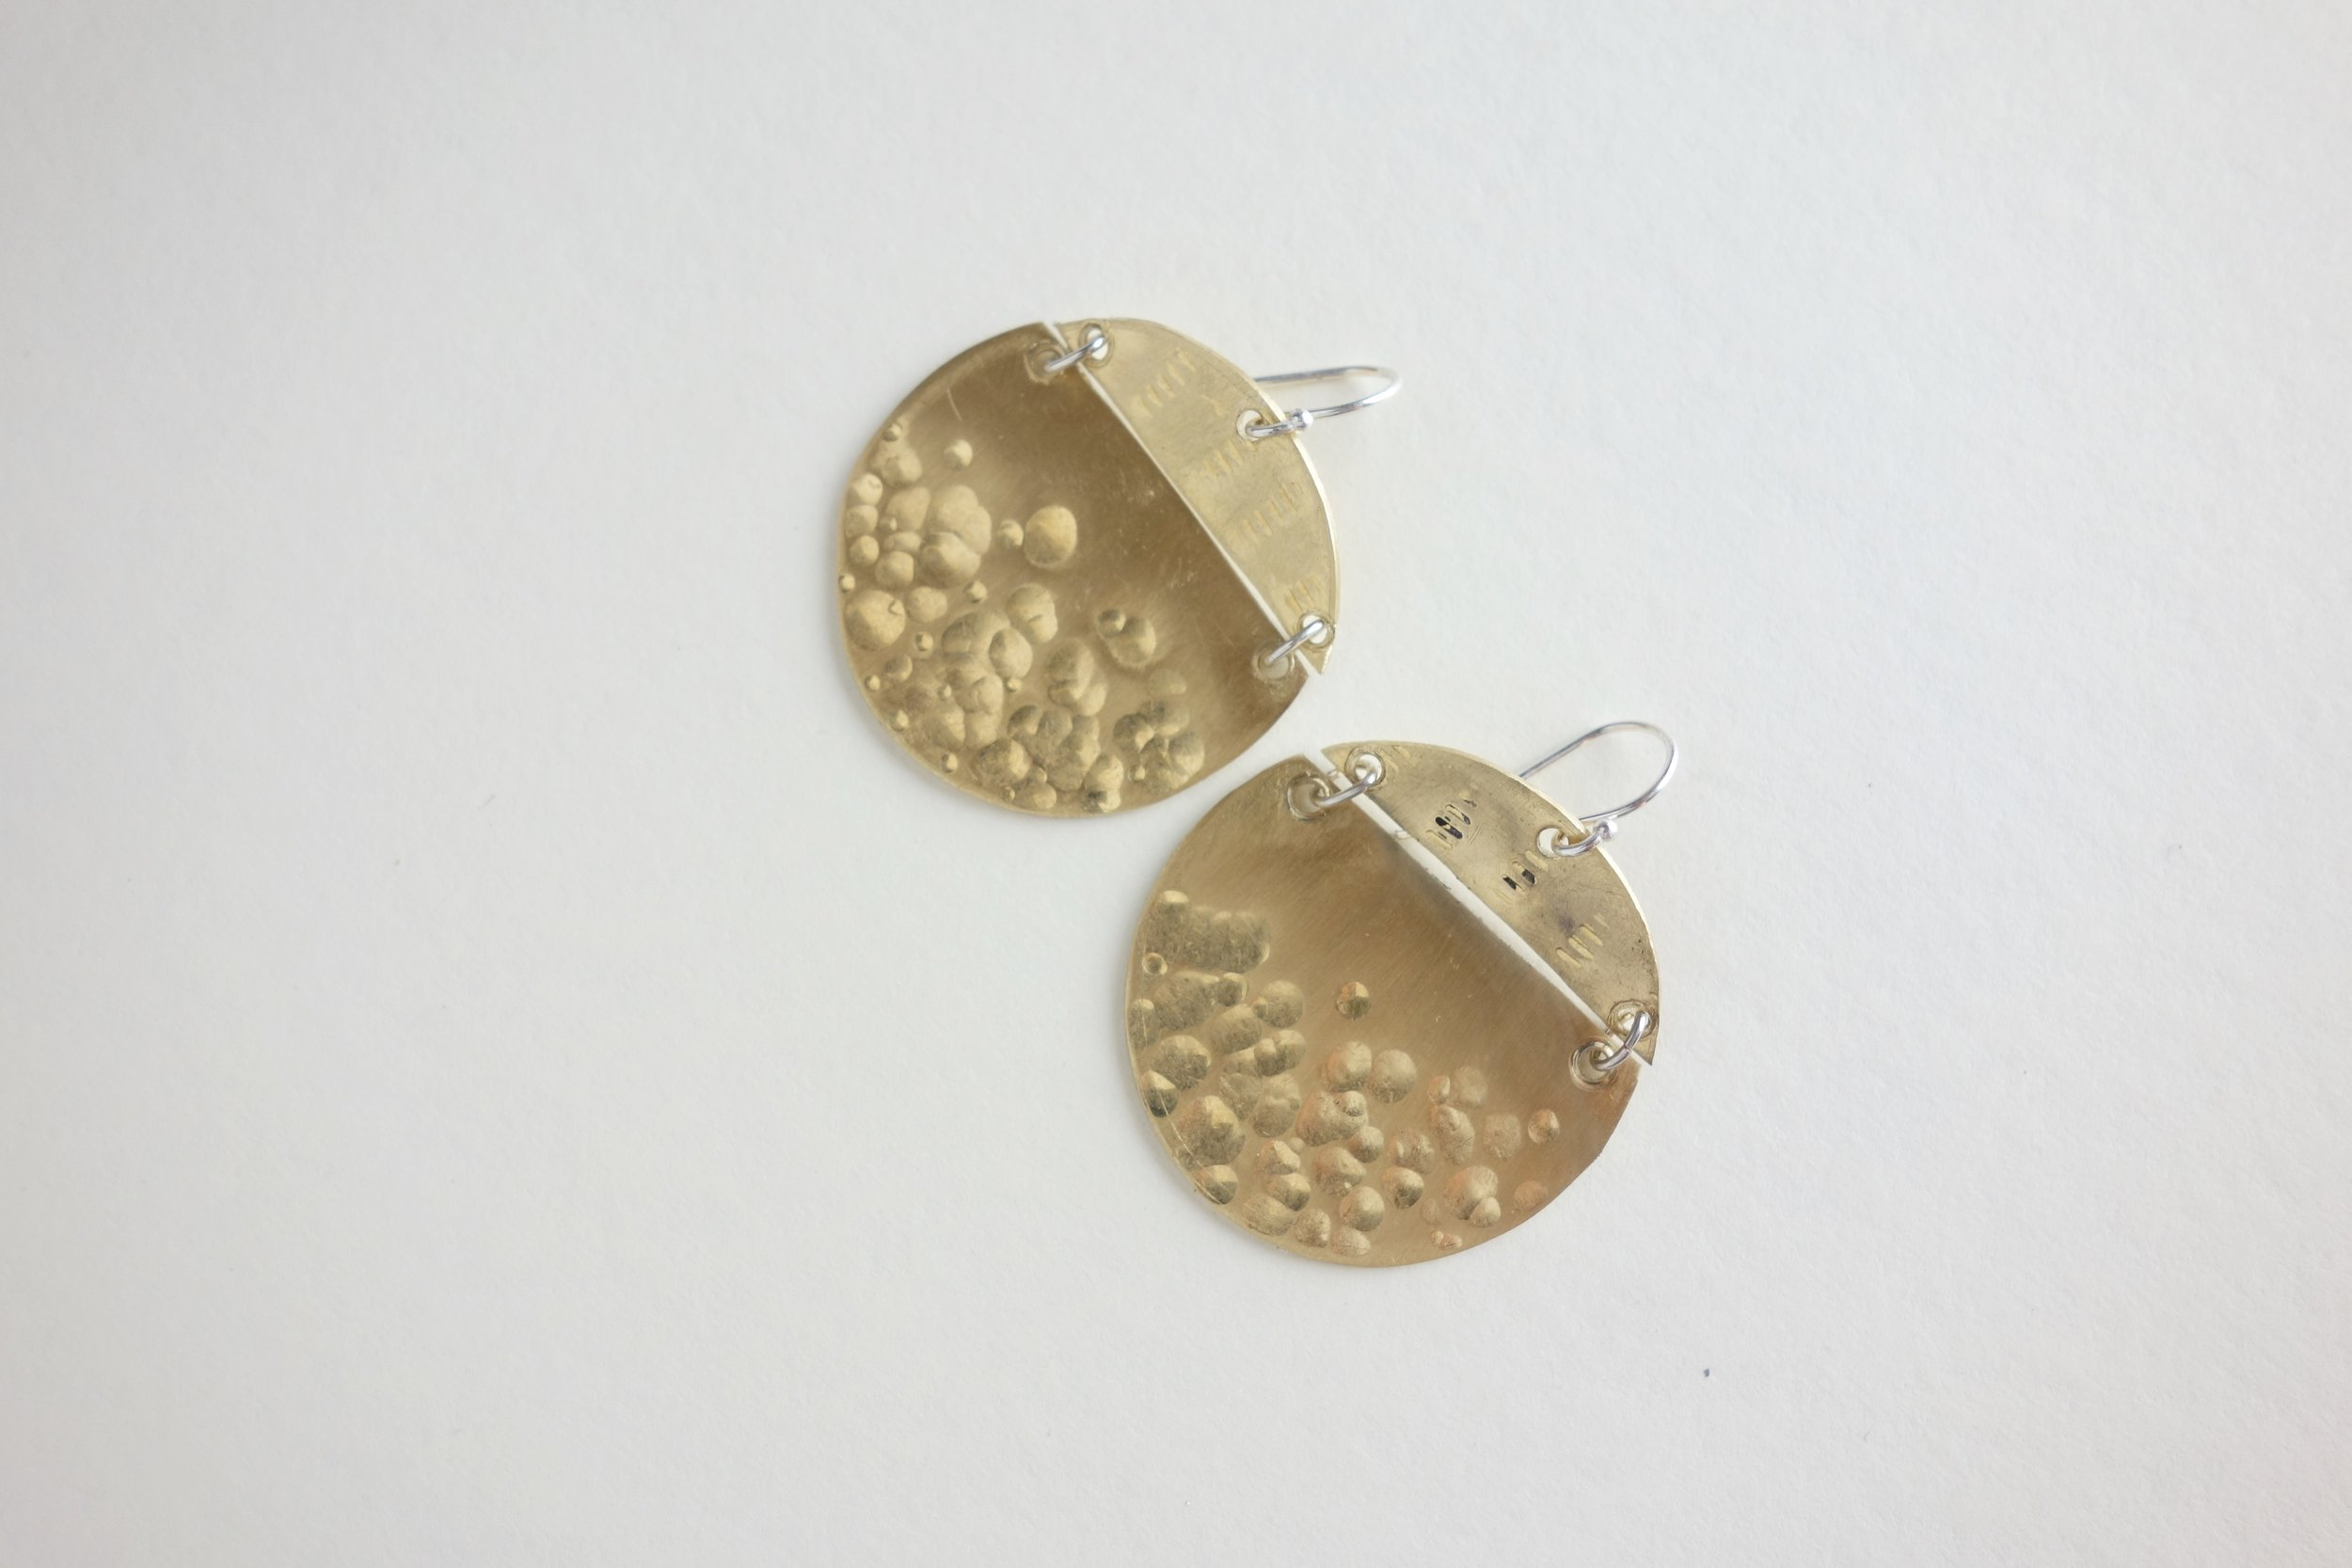 MeritMade Workshop Earring Workshop Make your own Earrings Hand Stamped